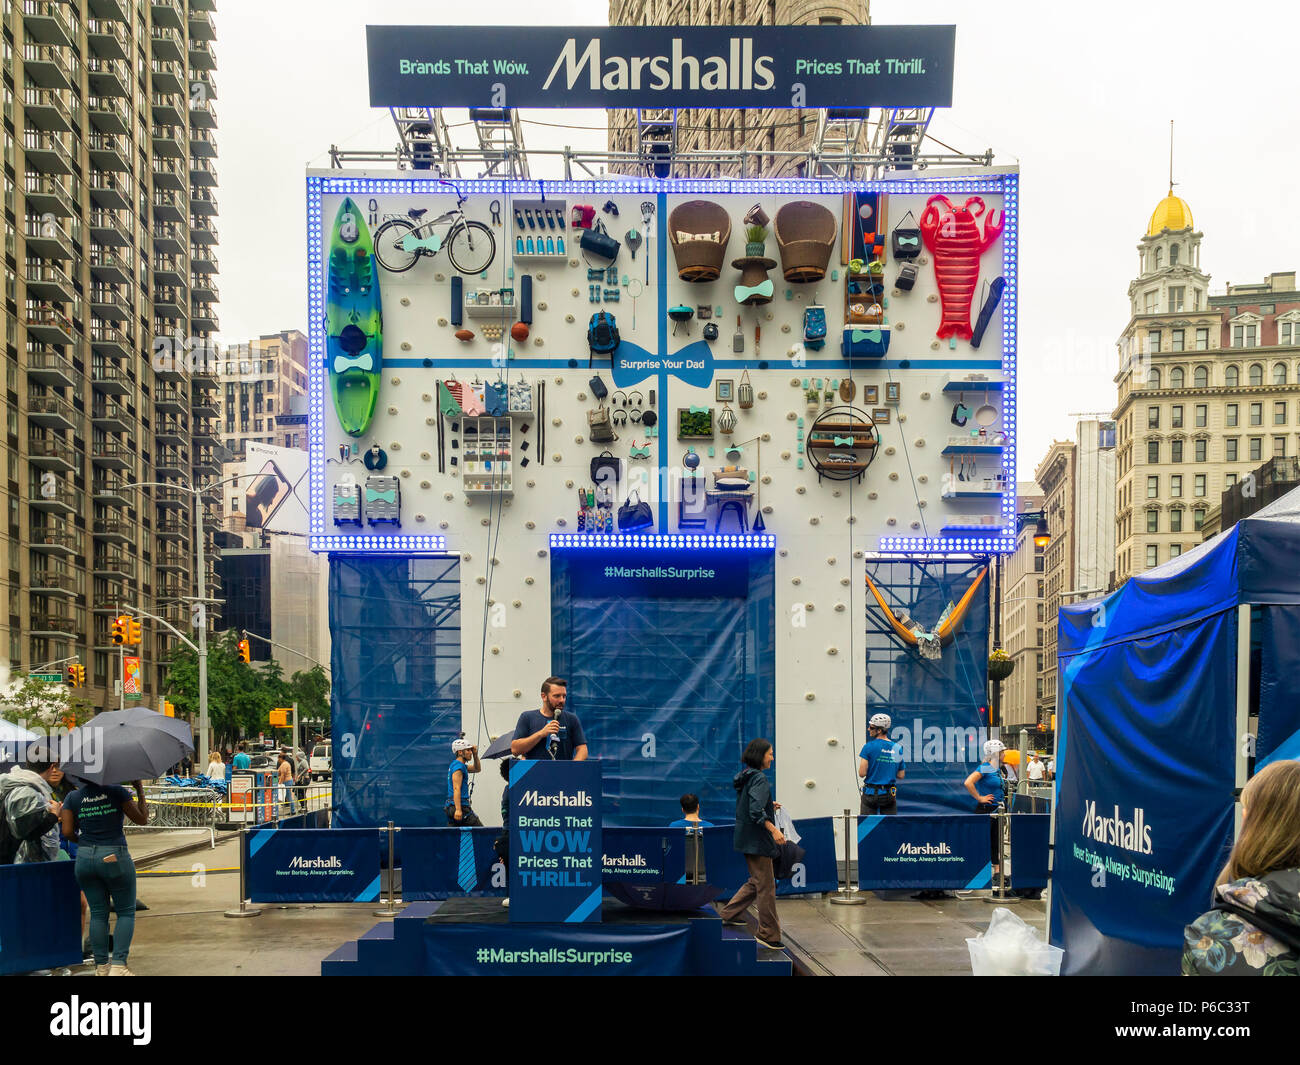 fd2931decb51 Climbers retrieve prizes for participants in a Marshalls branding event in  Flatiron Plaza in New York